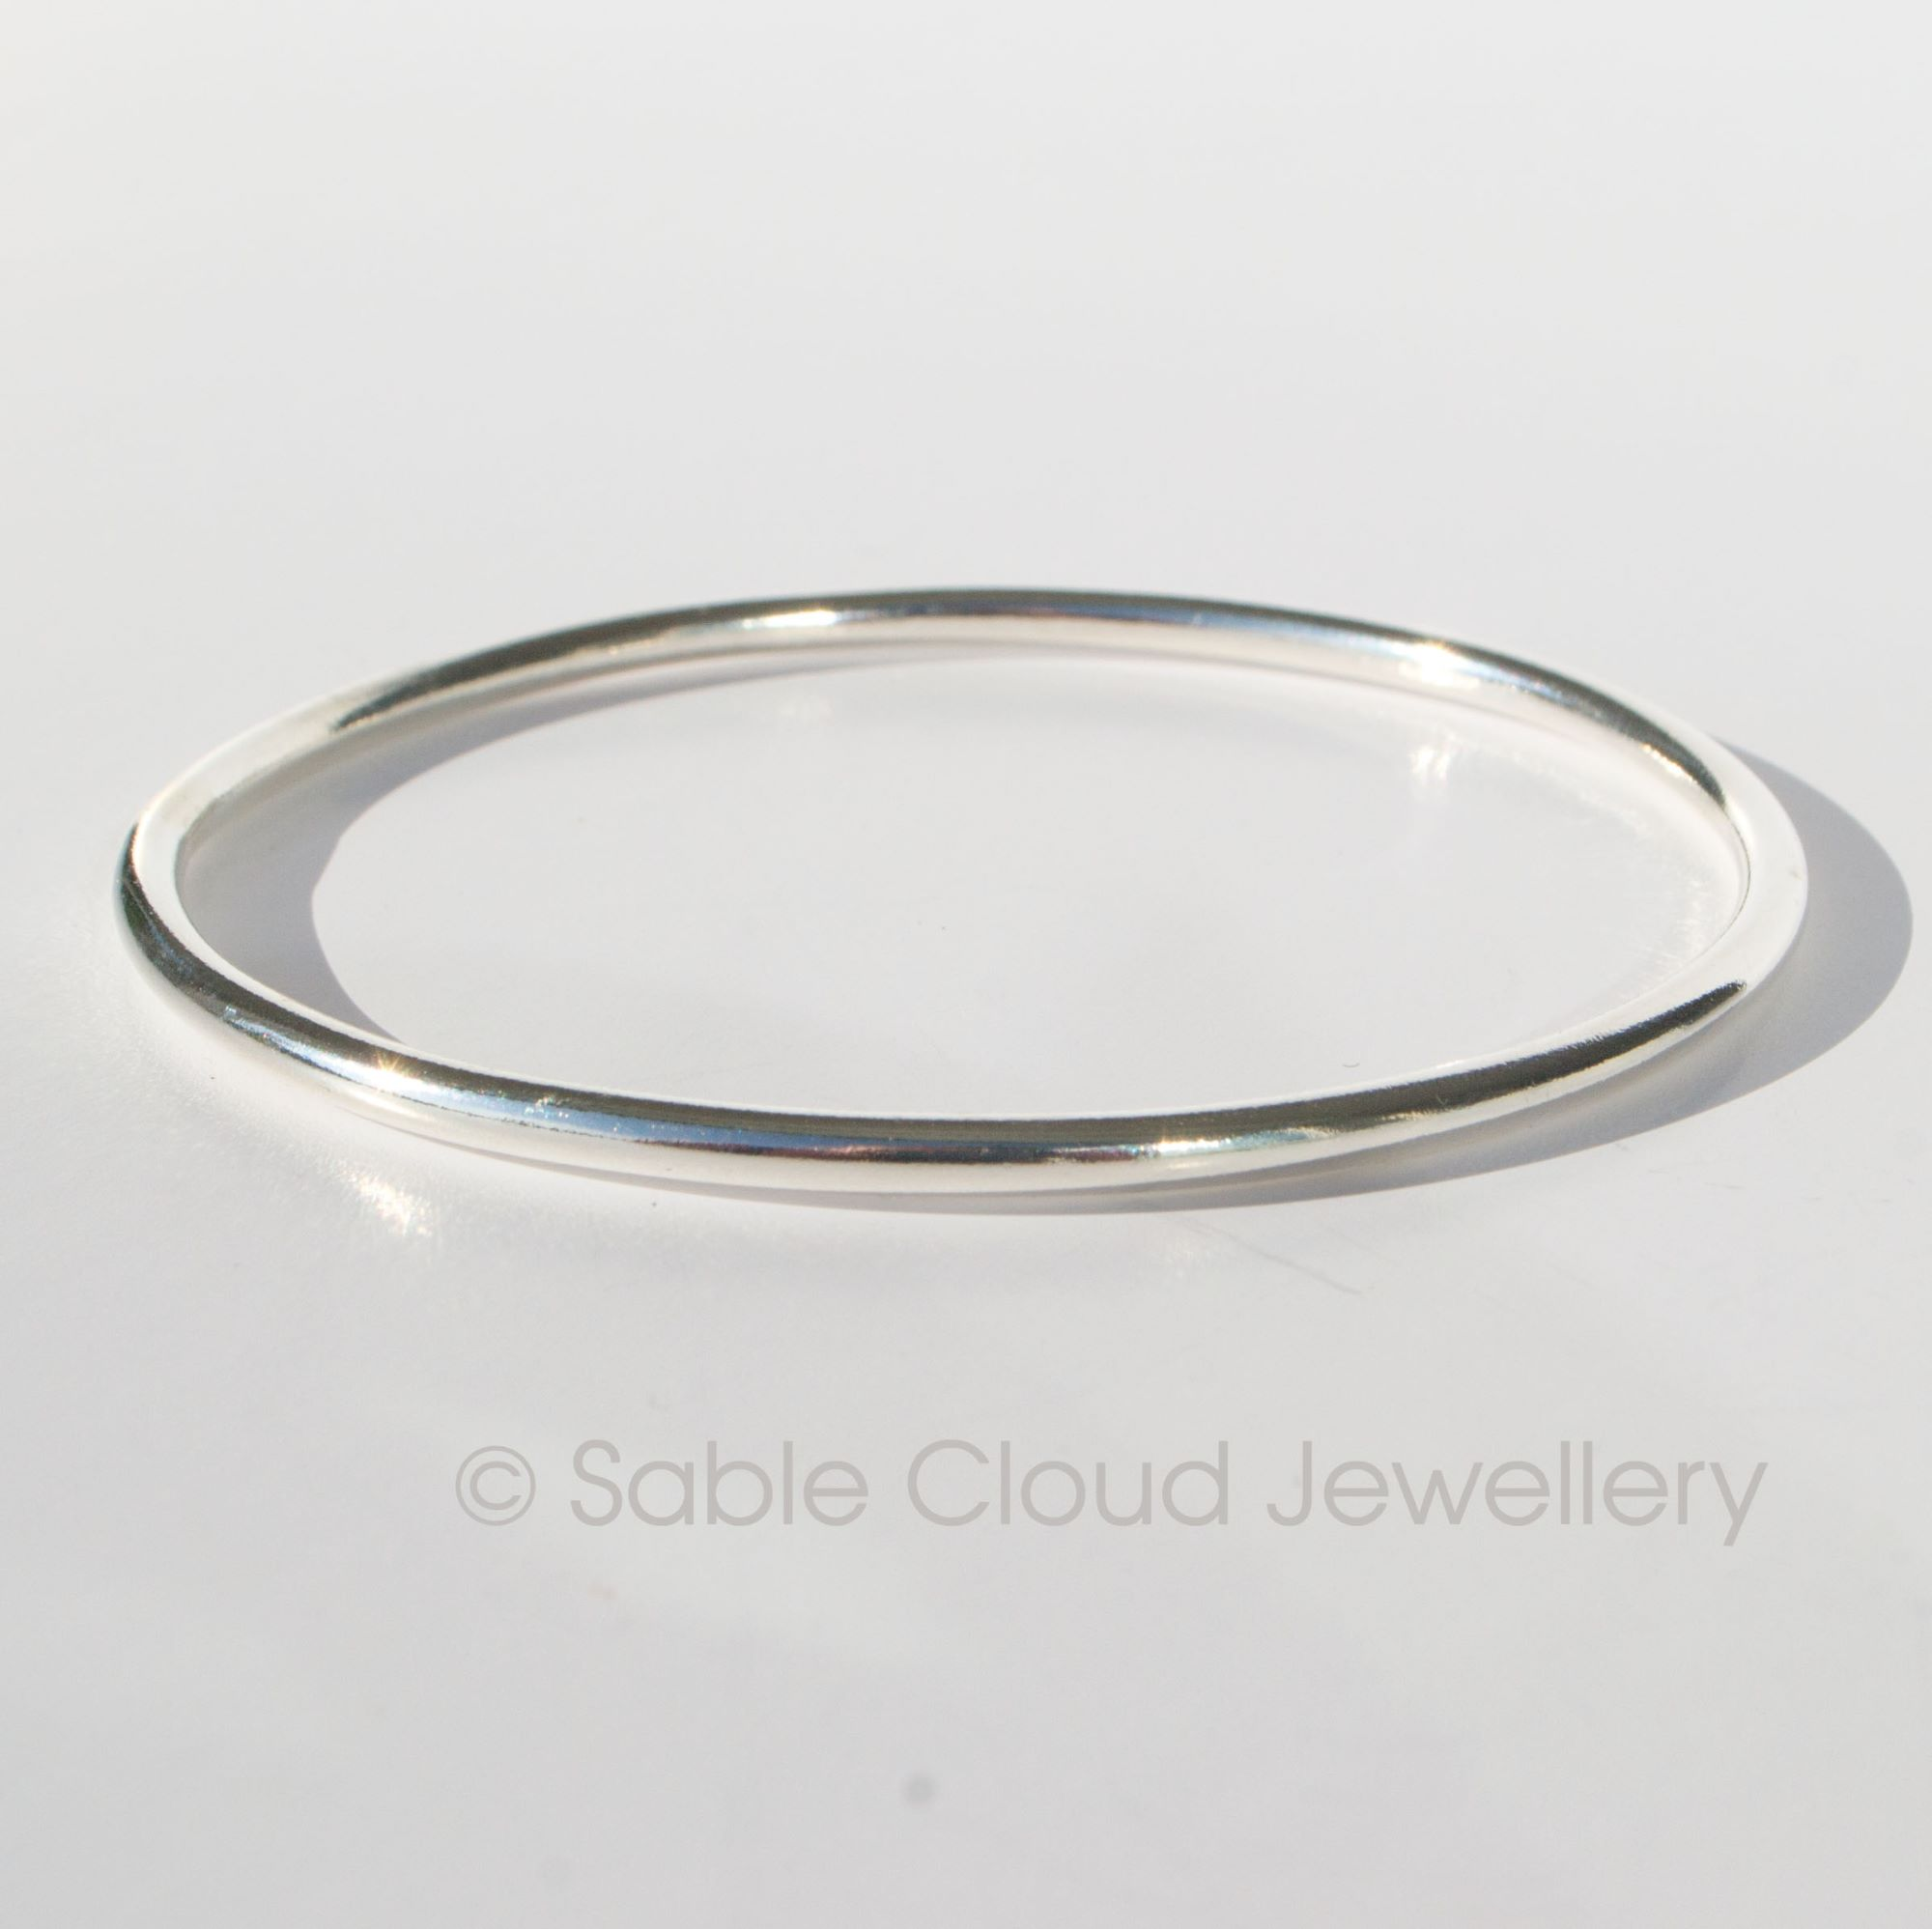 Duo Bangle by Sable Cloud Jewellery